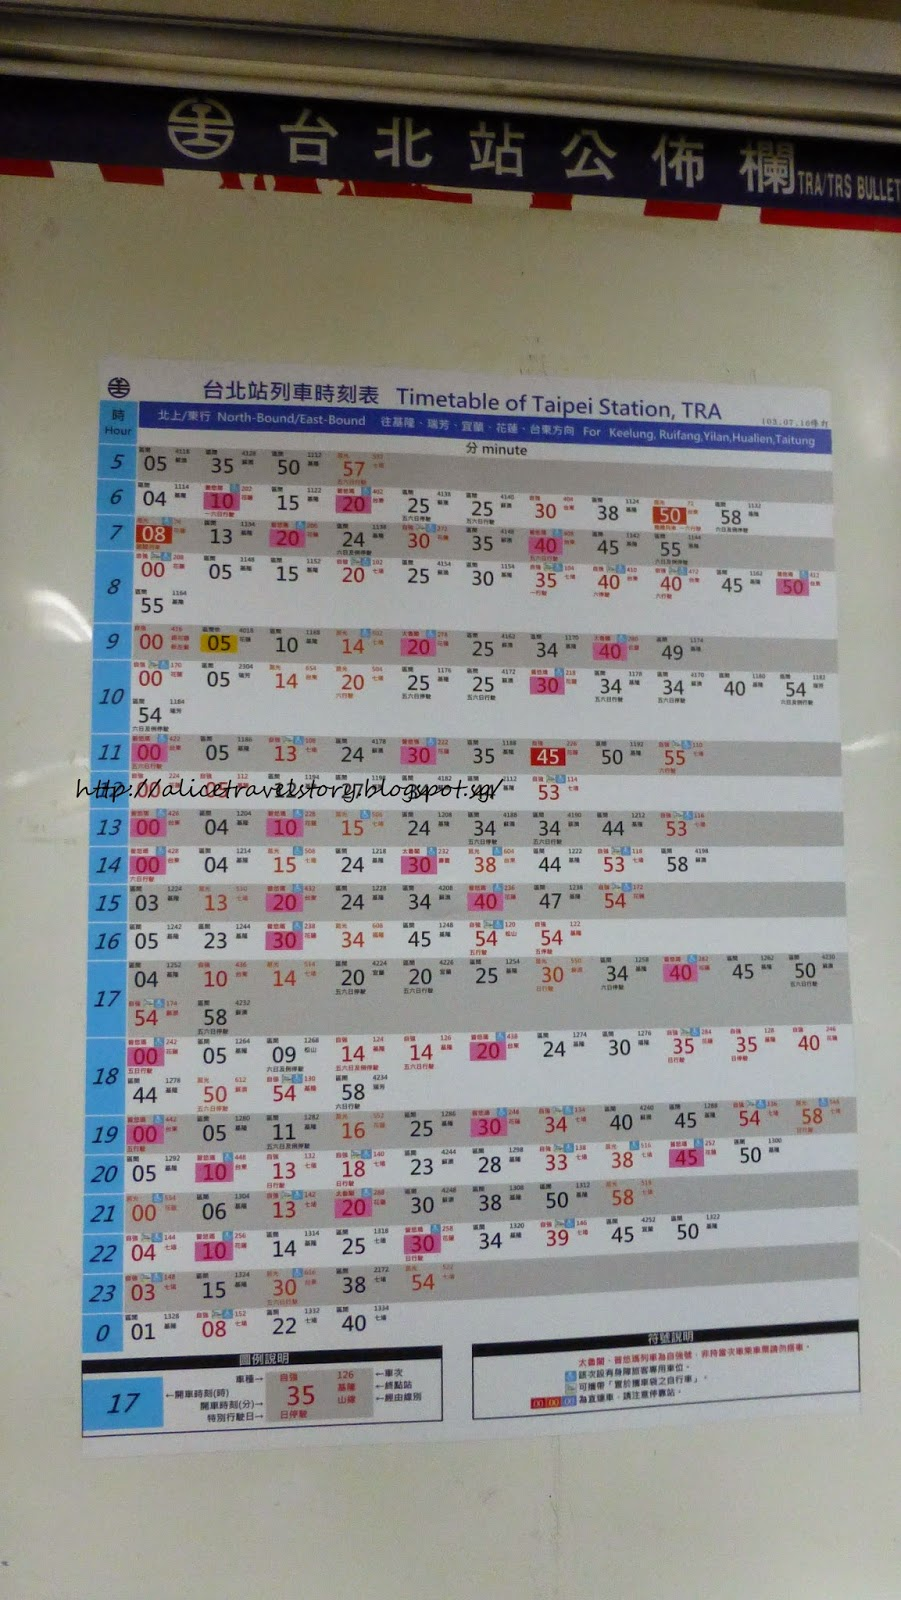 Alice Travelogue: Taiwan Trip 2014 - Day 4 - Making my way from